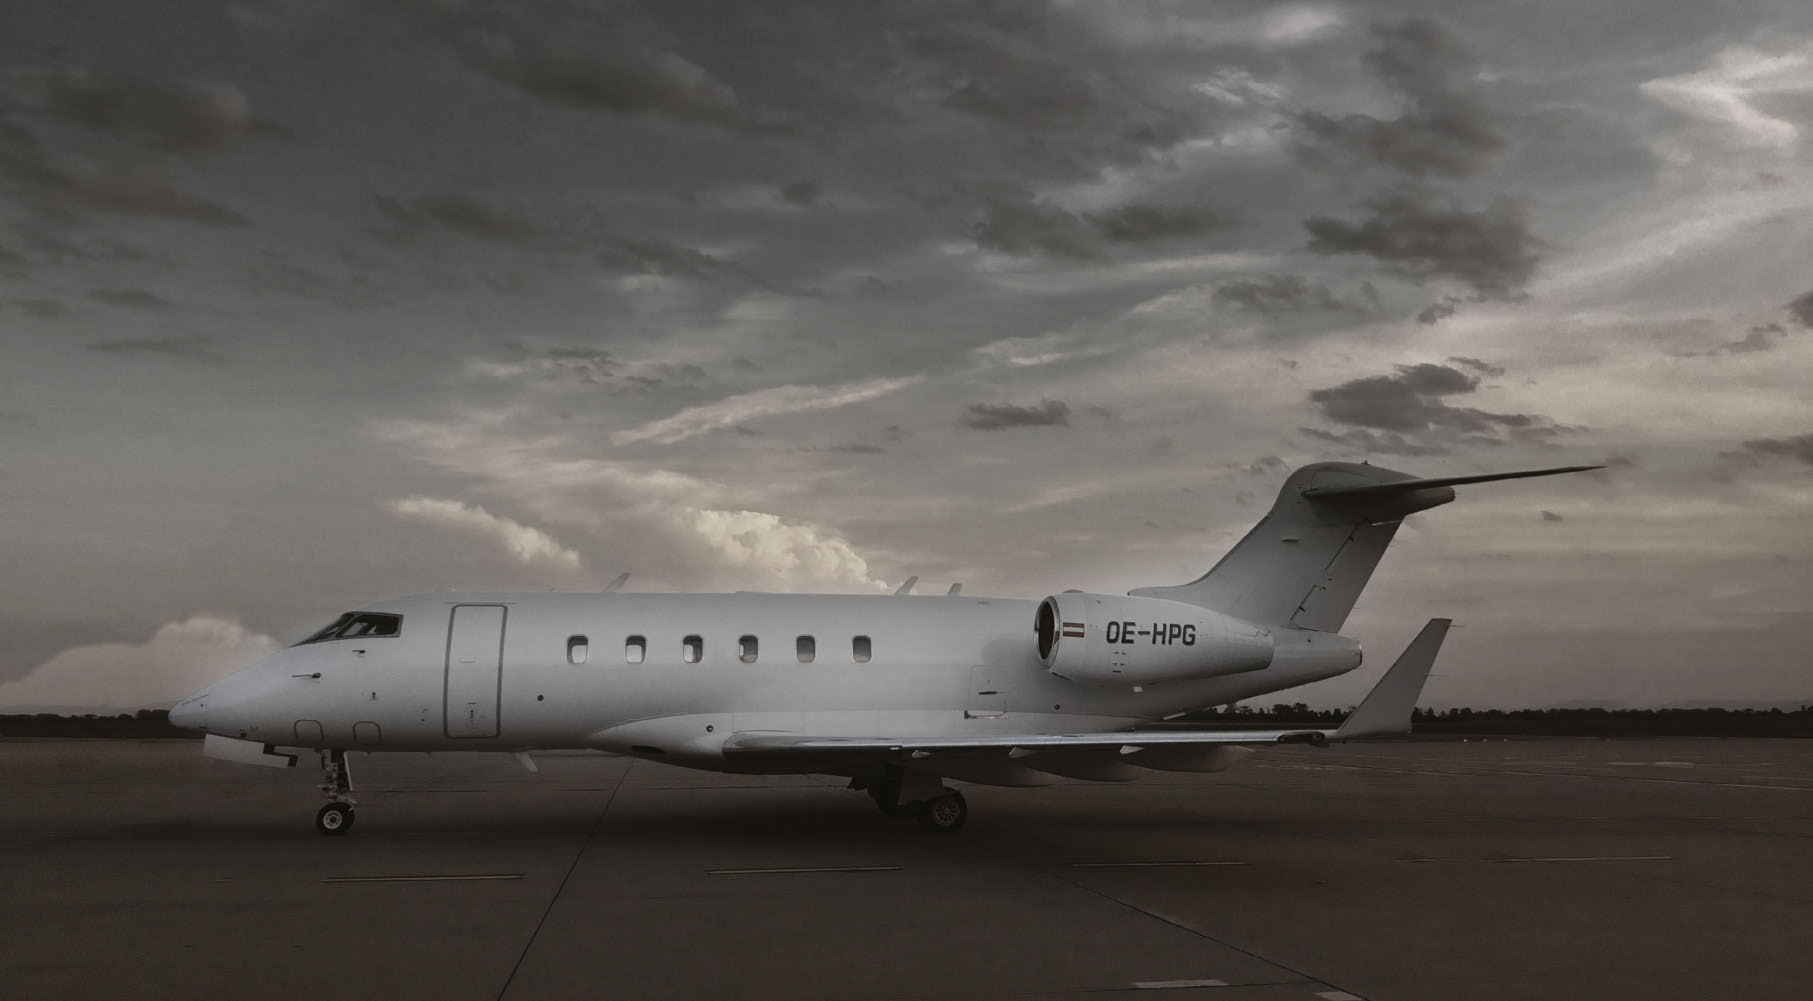 BOMBARDIER CHALLENGER 300 OE-HPG FACTS Challenger 300 combines best  performance with maximum comfort,